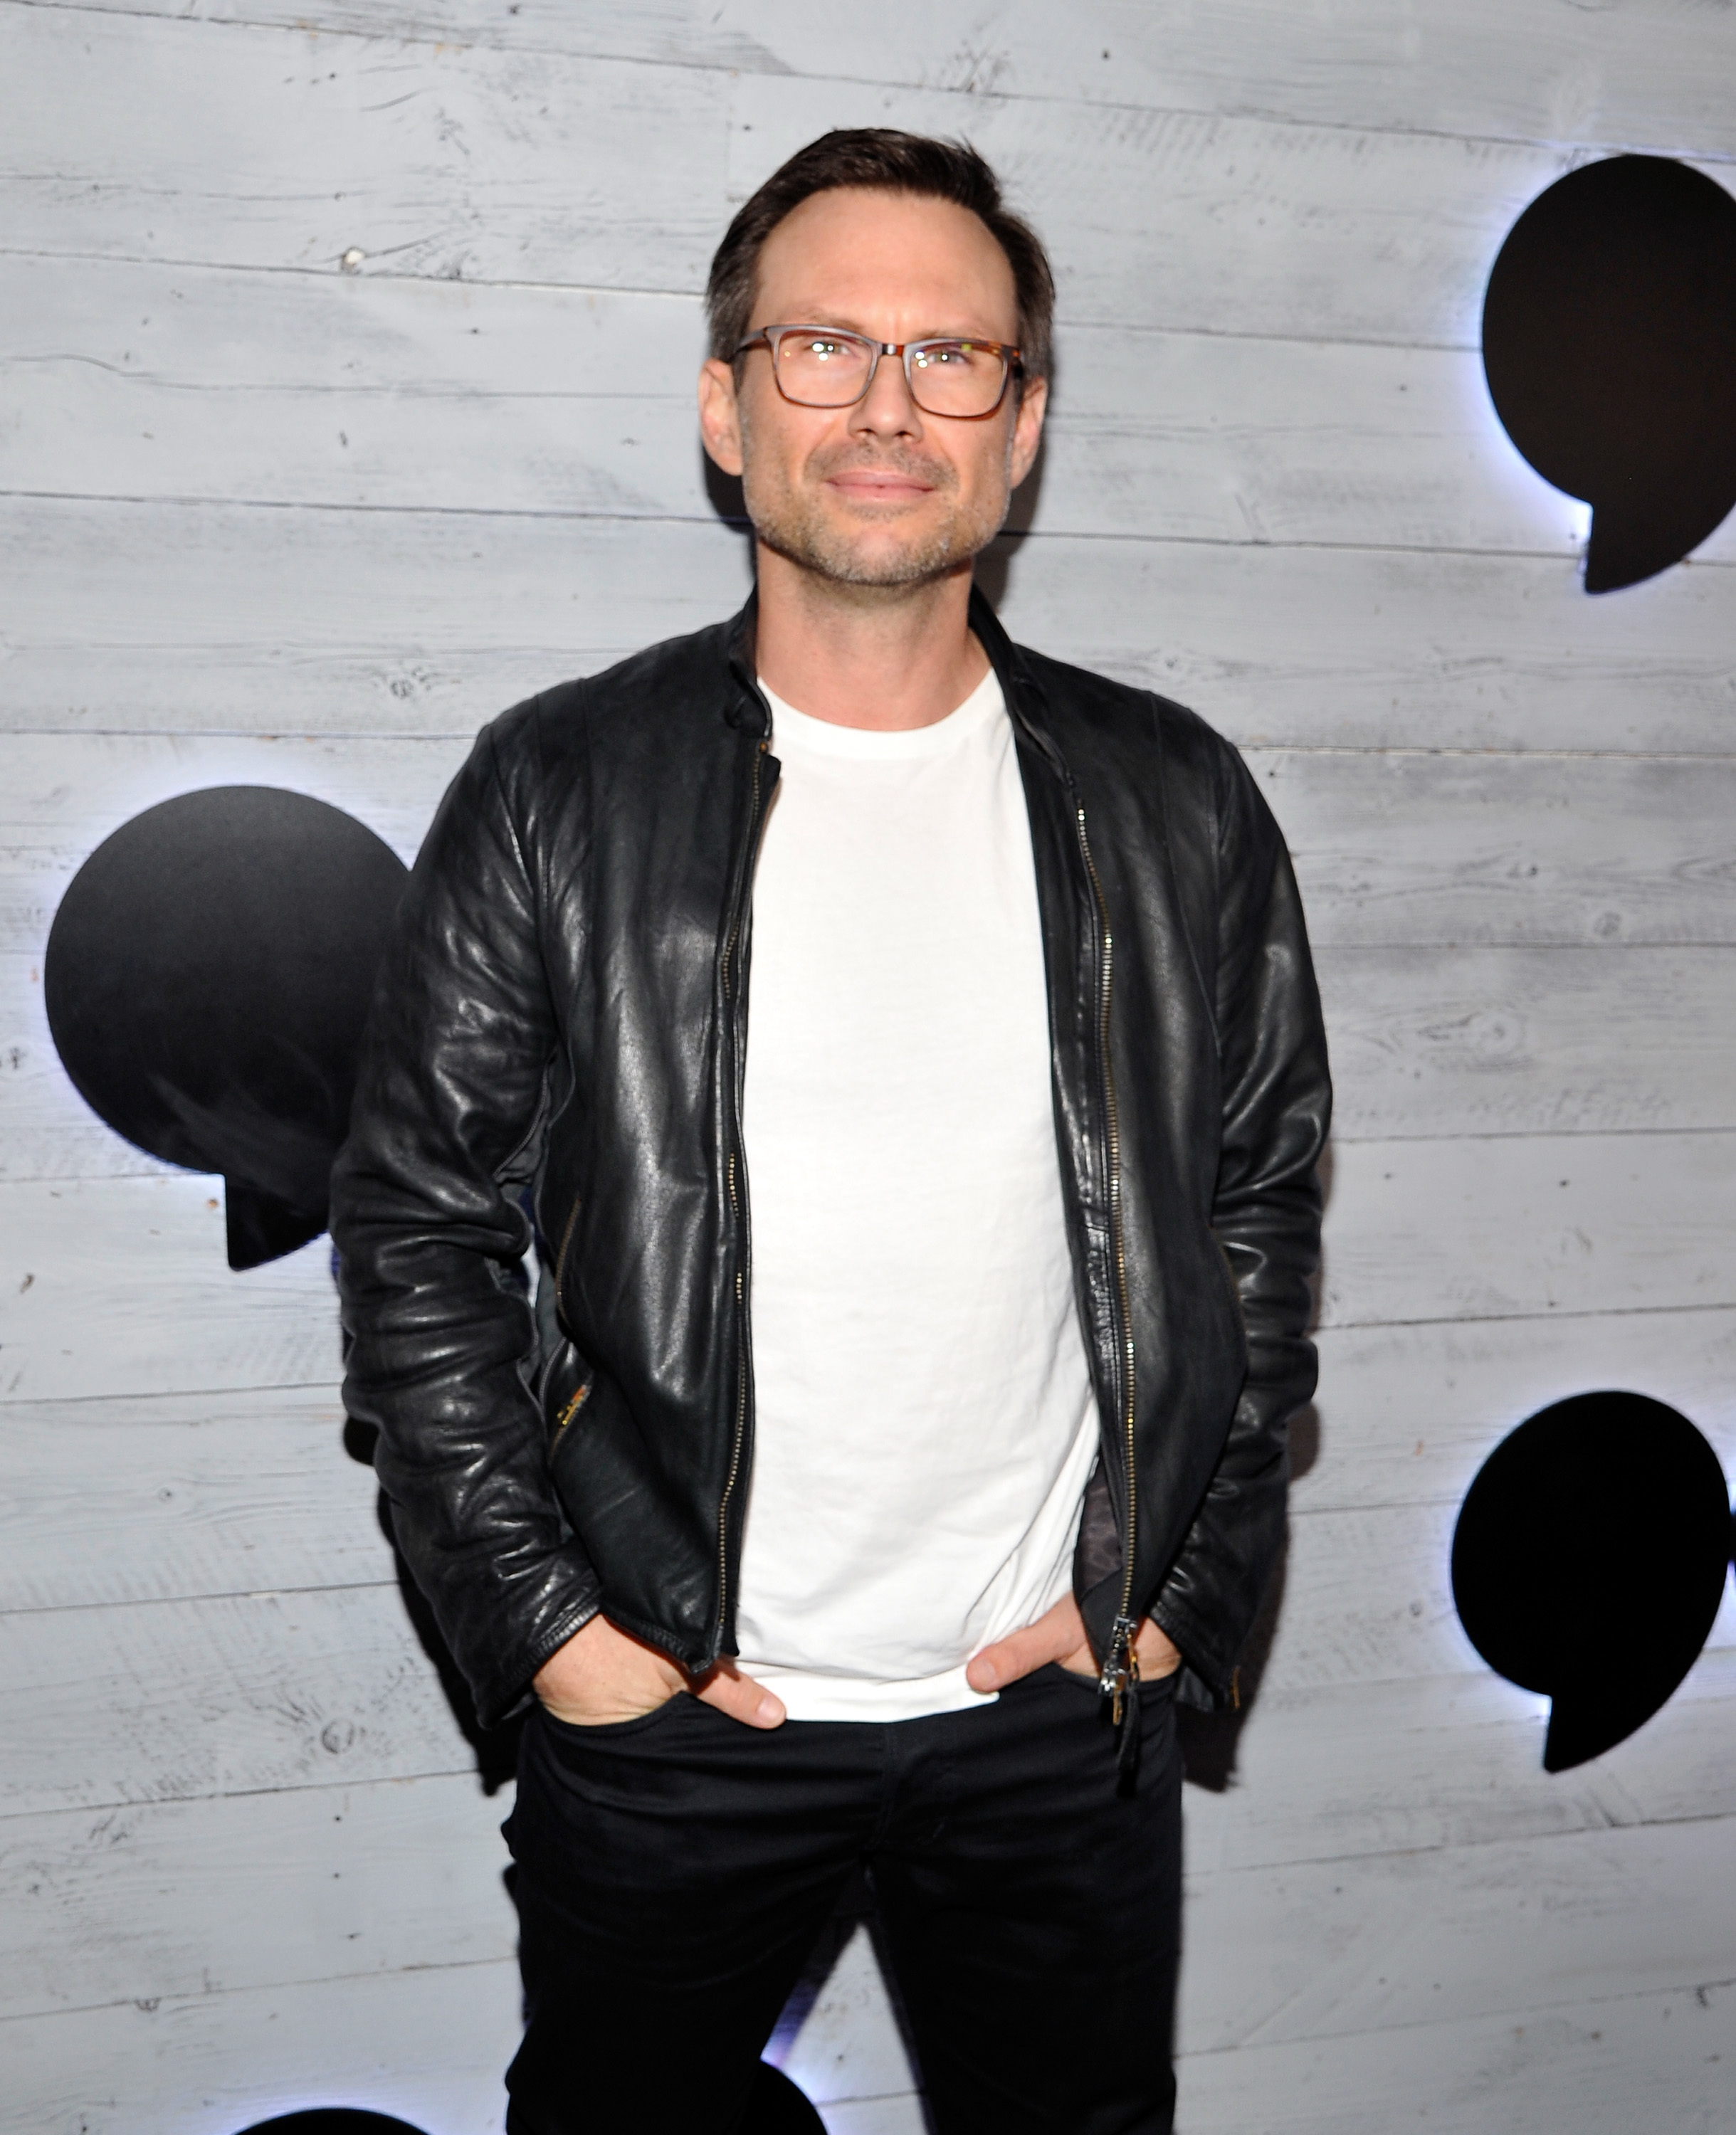 Christian Slater's dad is suing him for $20M